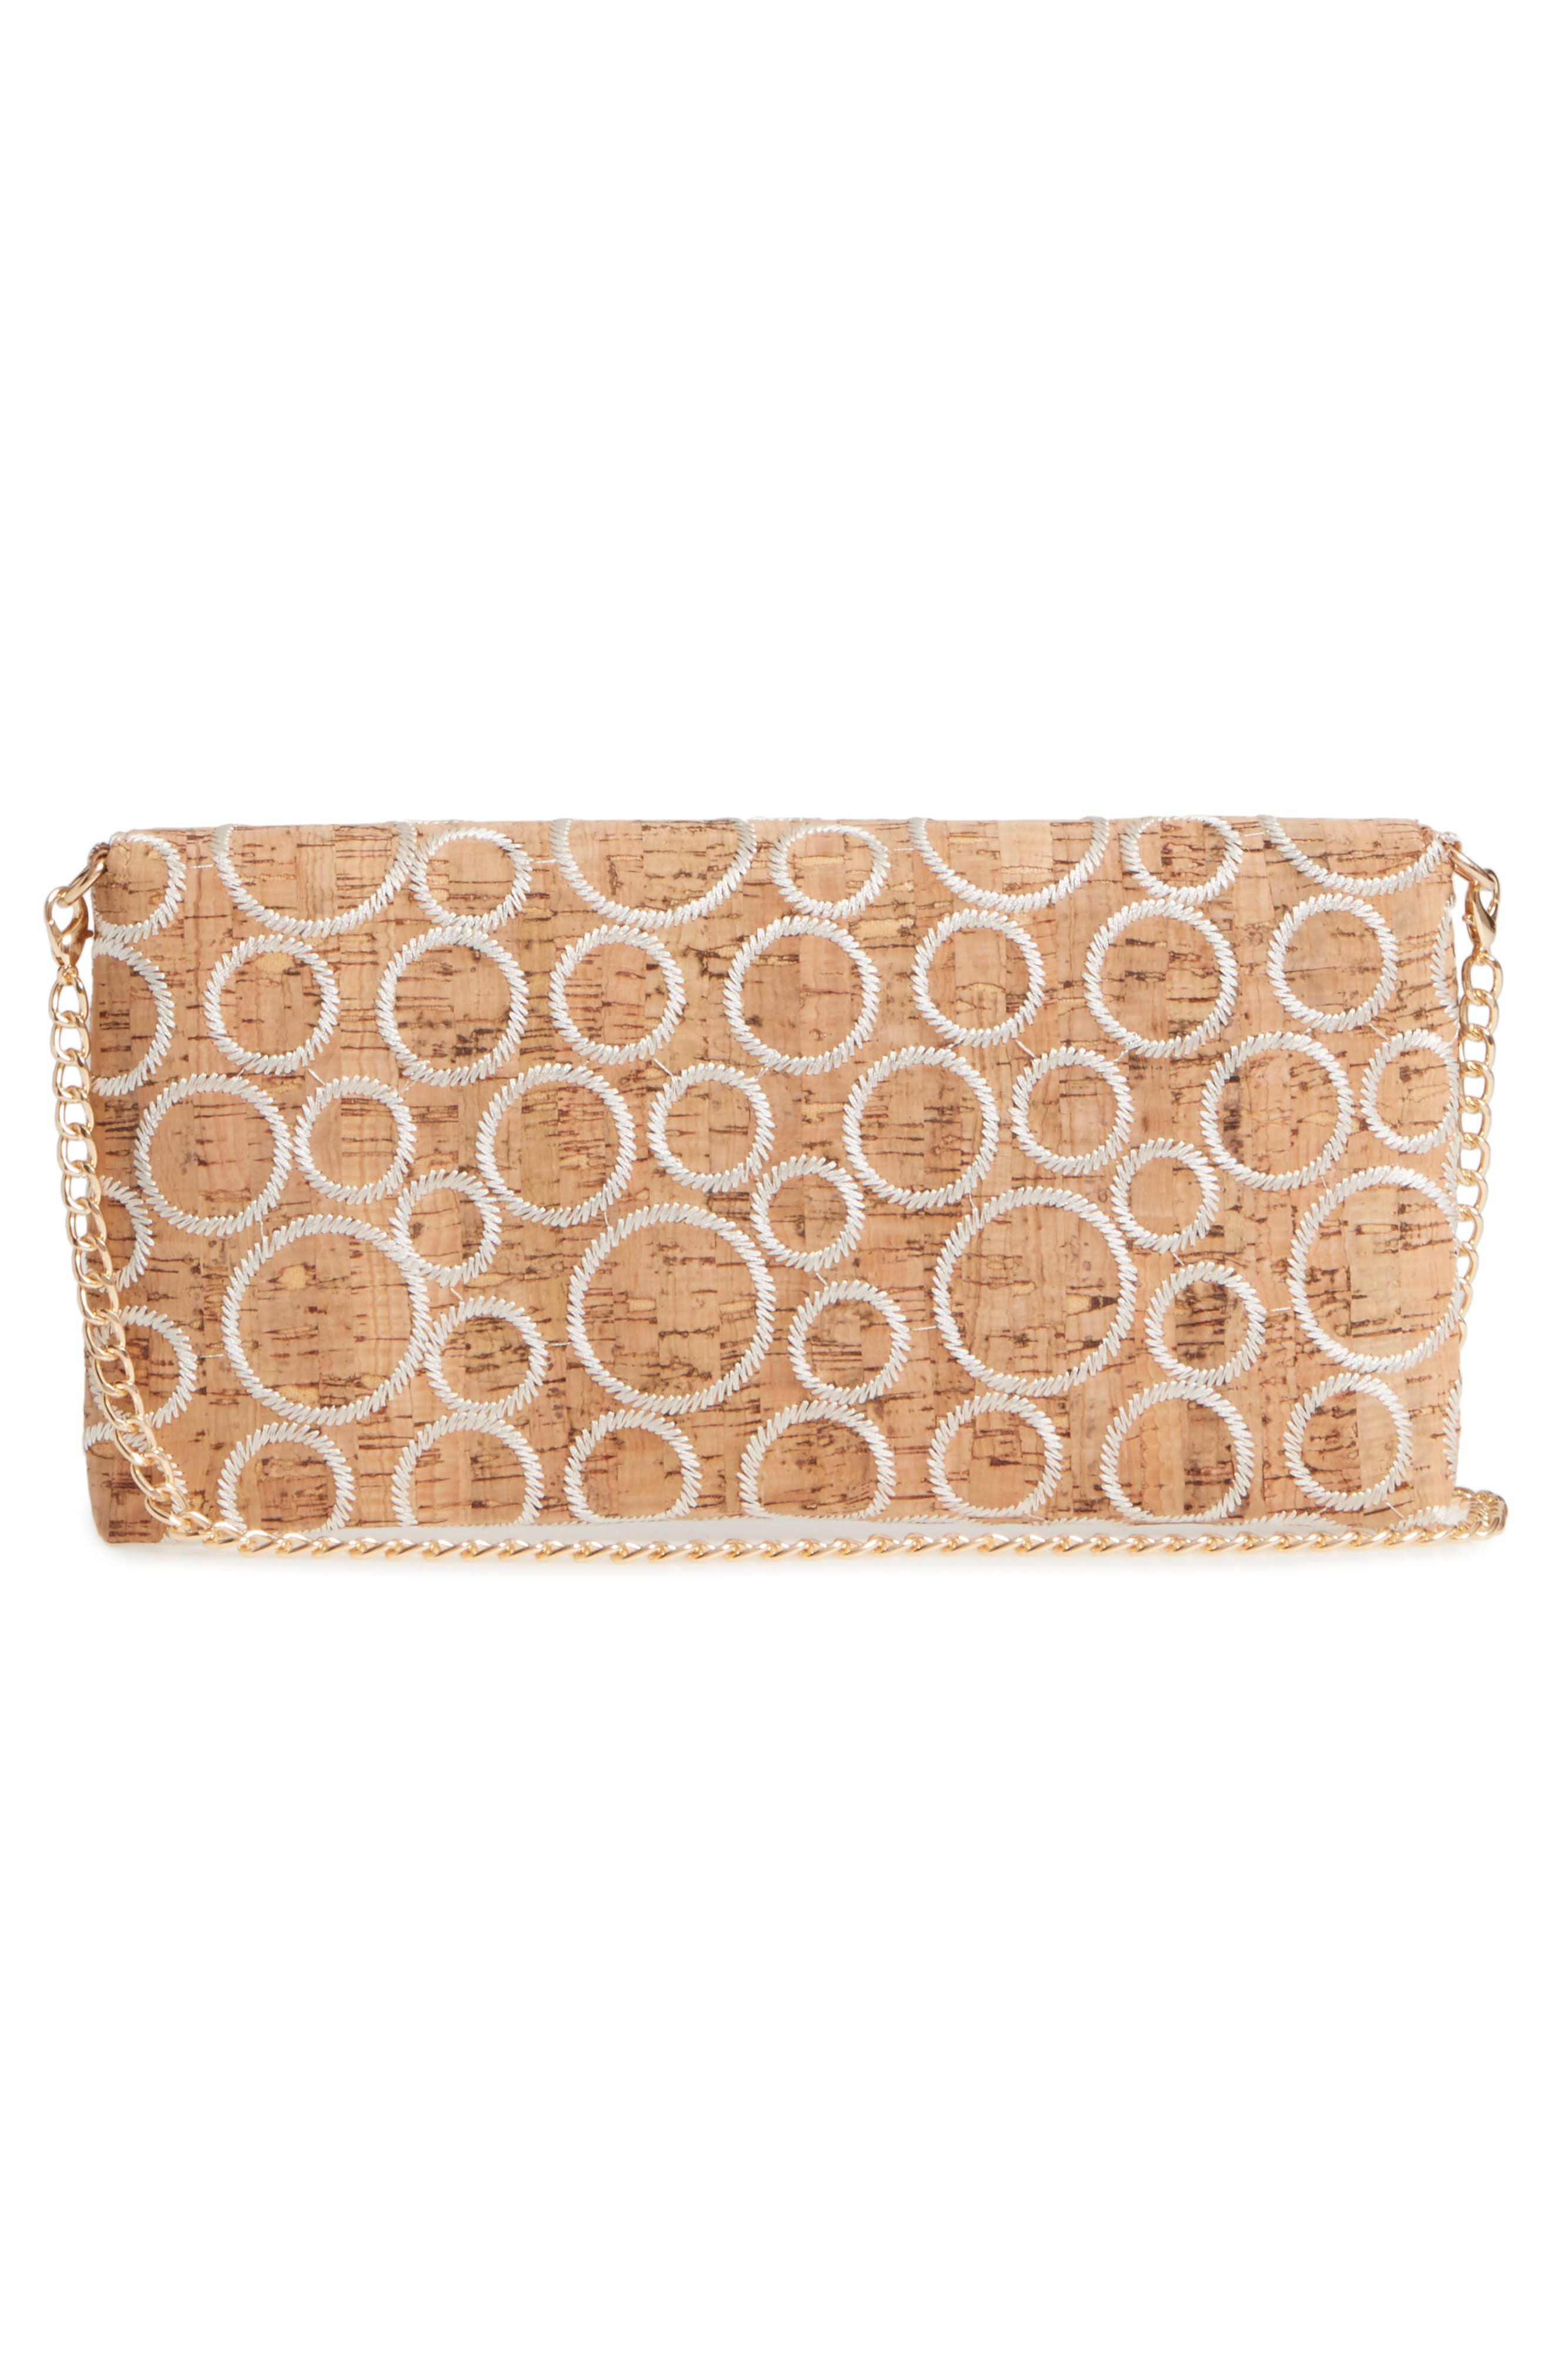 Embroidered Clutch,                             Alternate thumbnail 3, color,                             Natural/ White